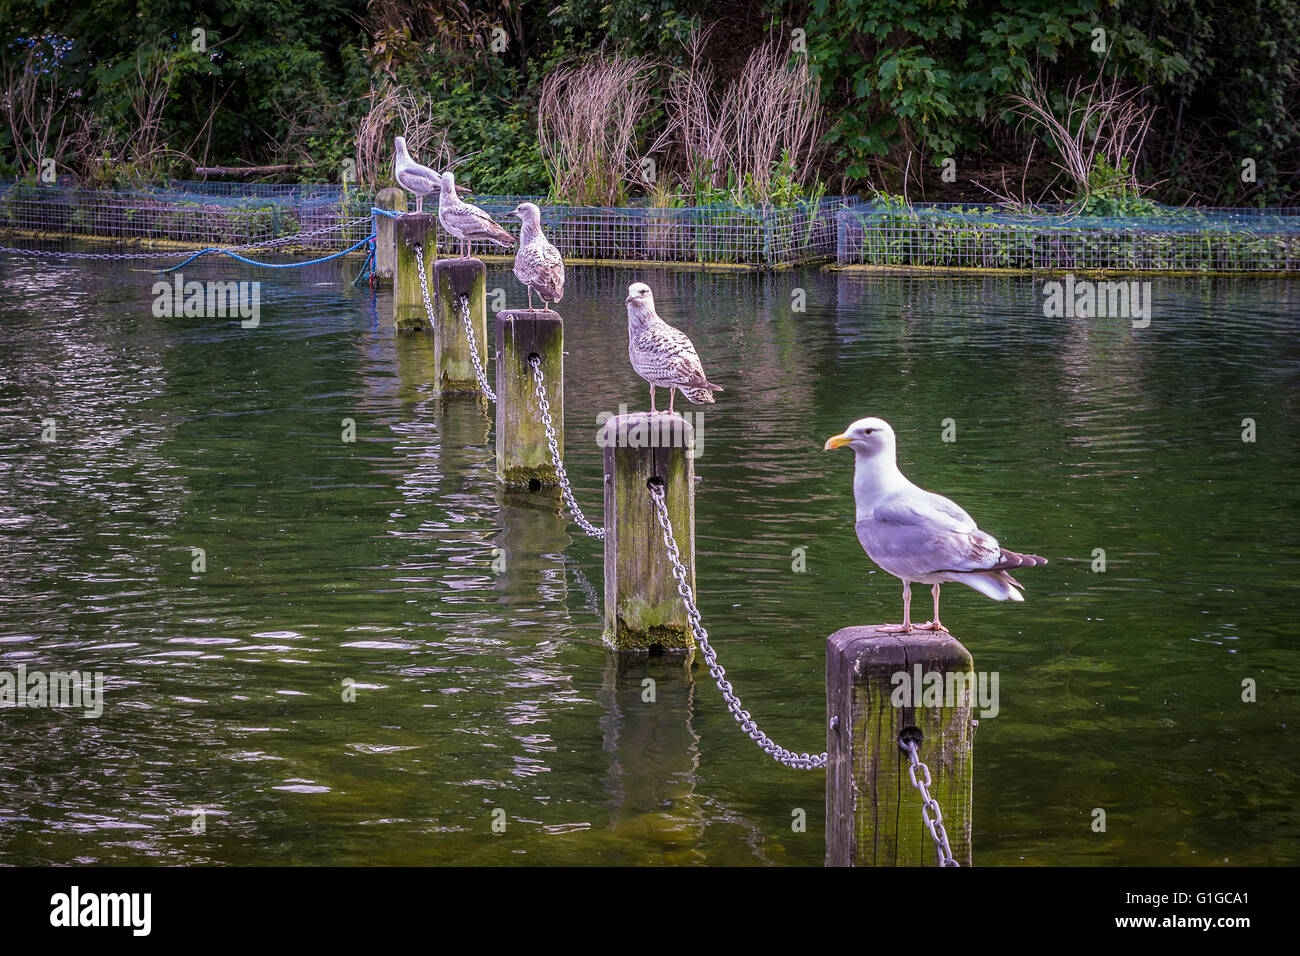 Five seagulls in a row sitting on posts on the Serpentine in Hyde park London. - Stock Image